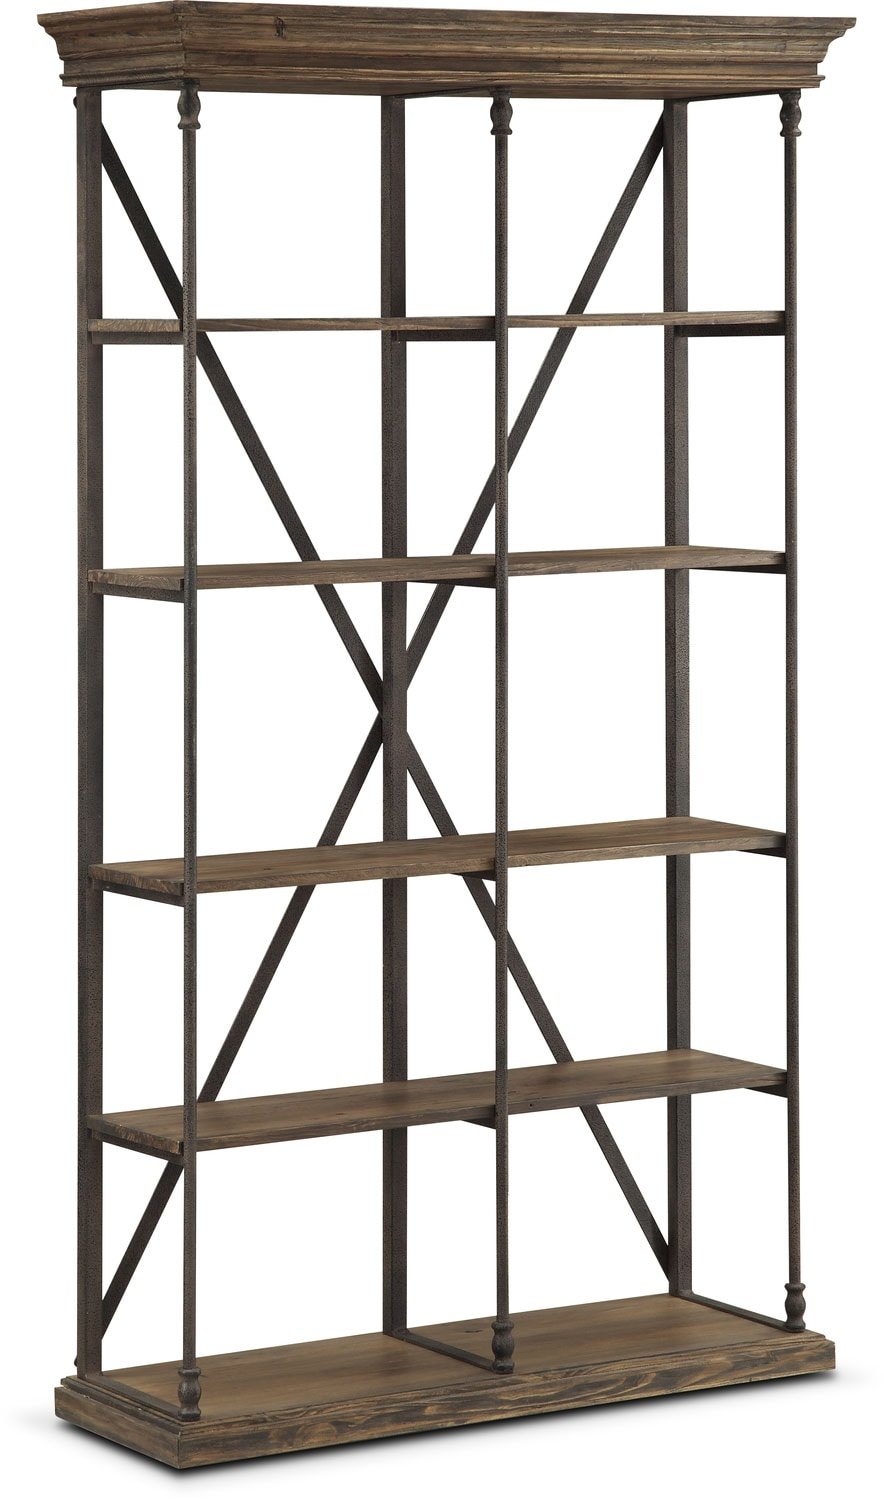 Home Office Furniture - Bedford Double Bookcase - Pine